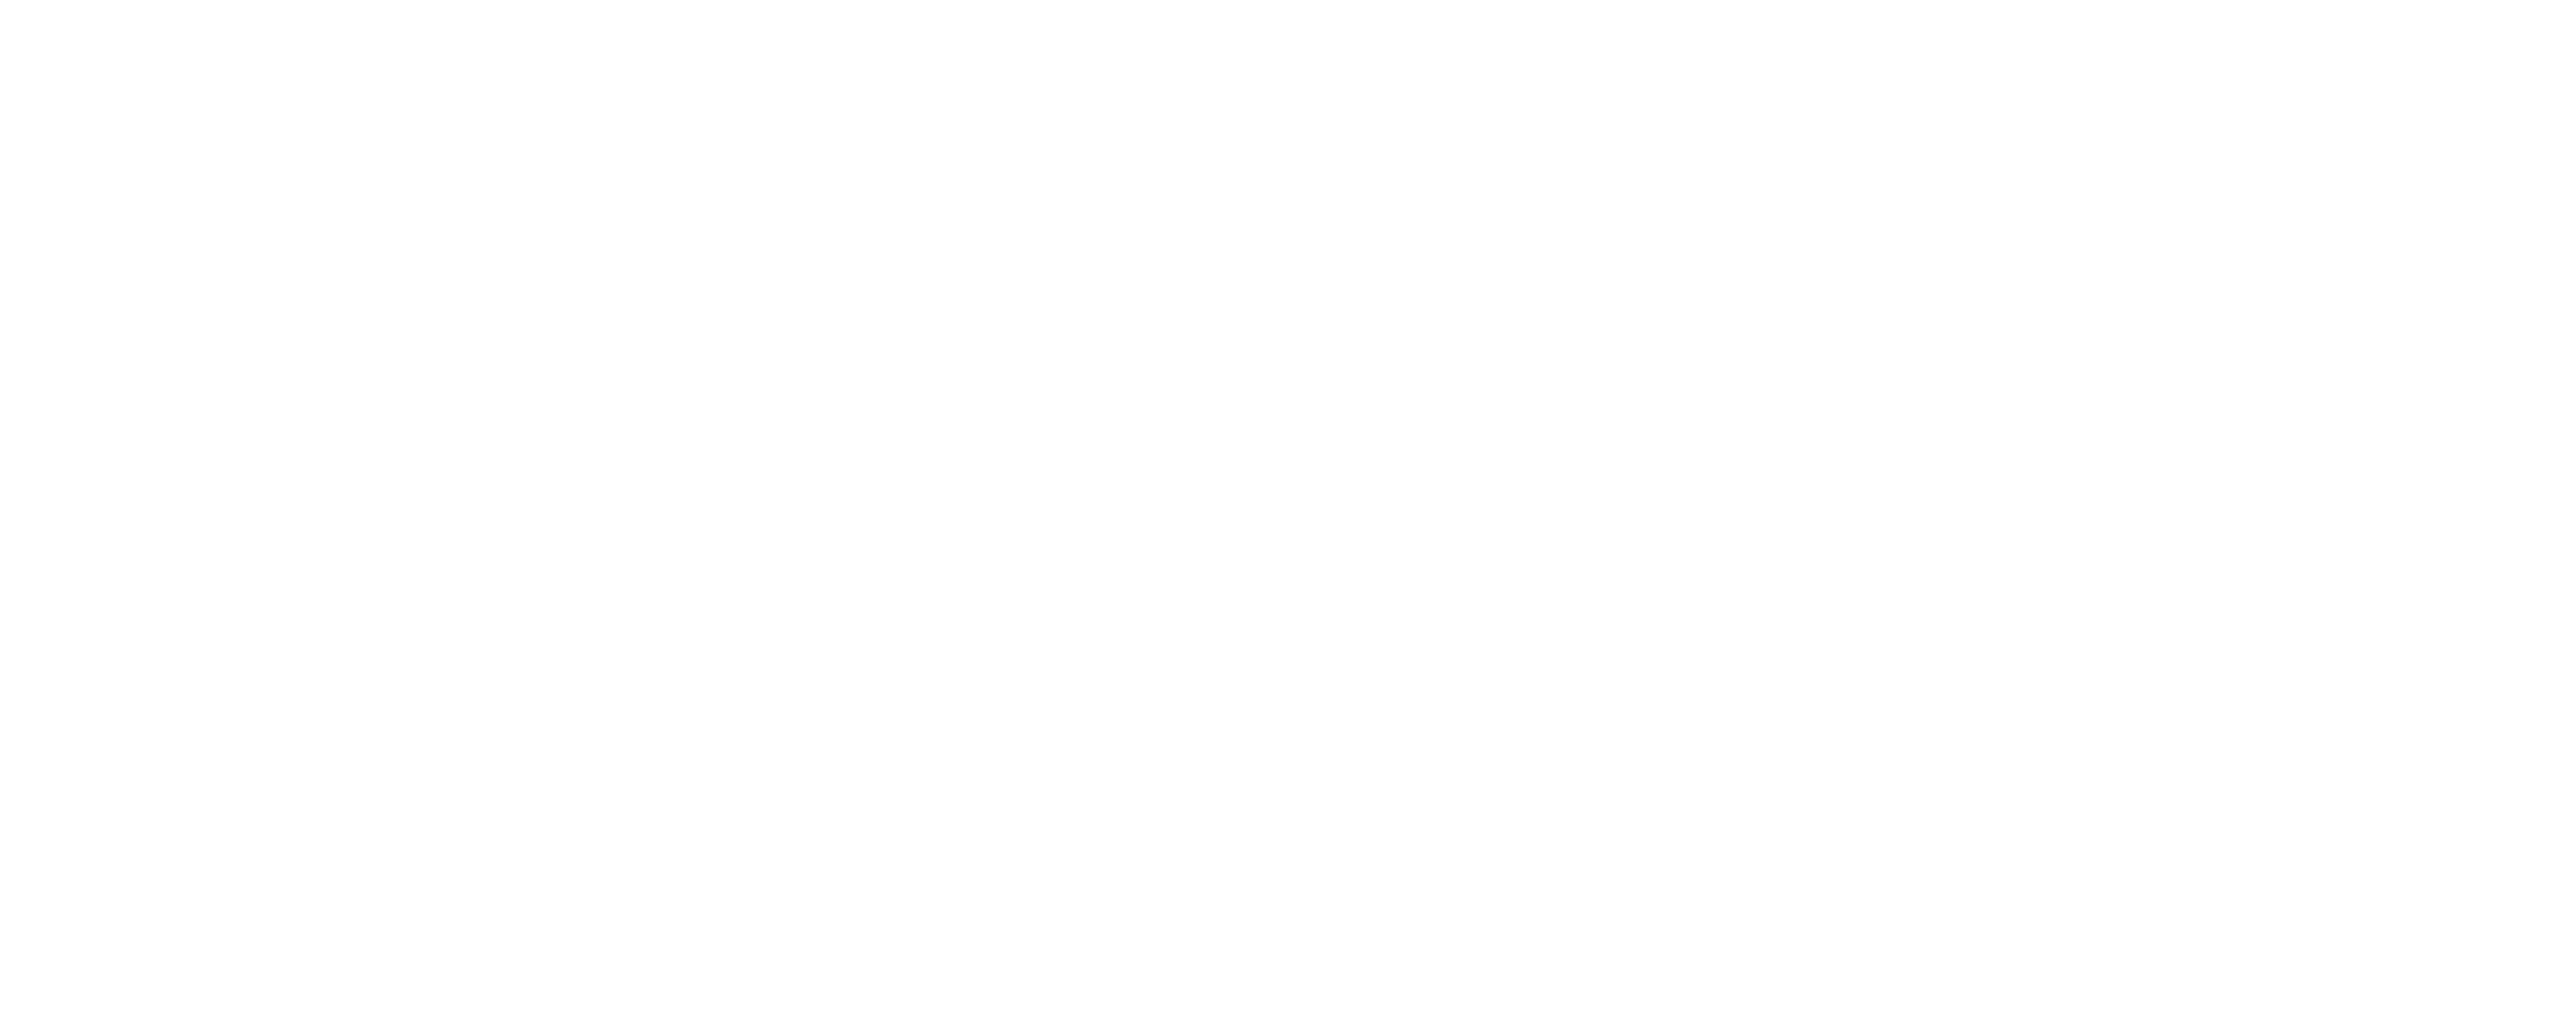 Lularoe logo png. Mandy o connell every